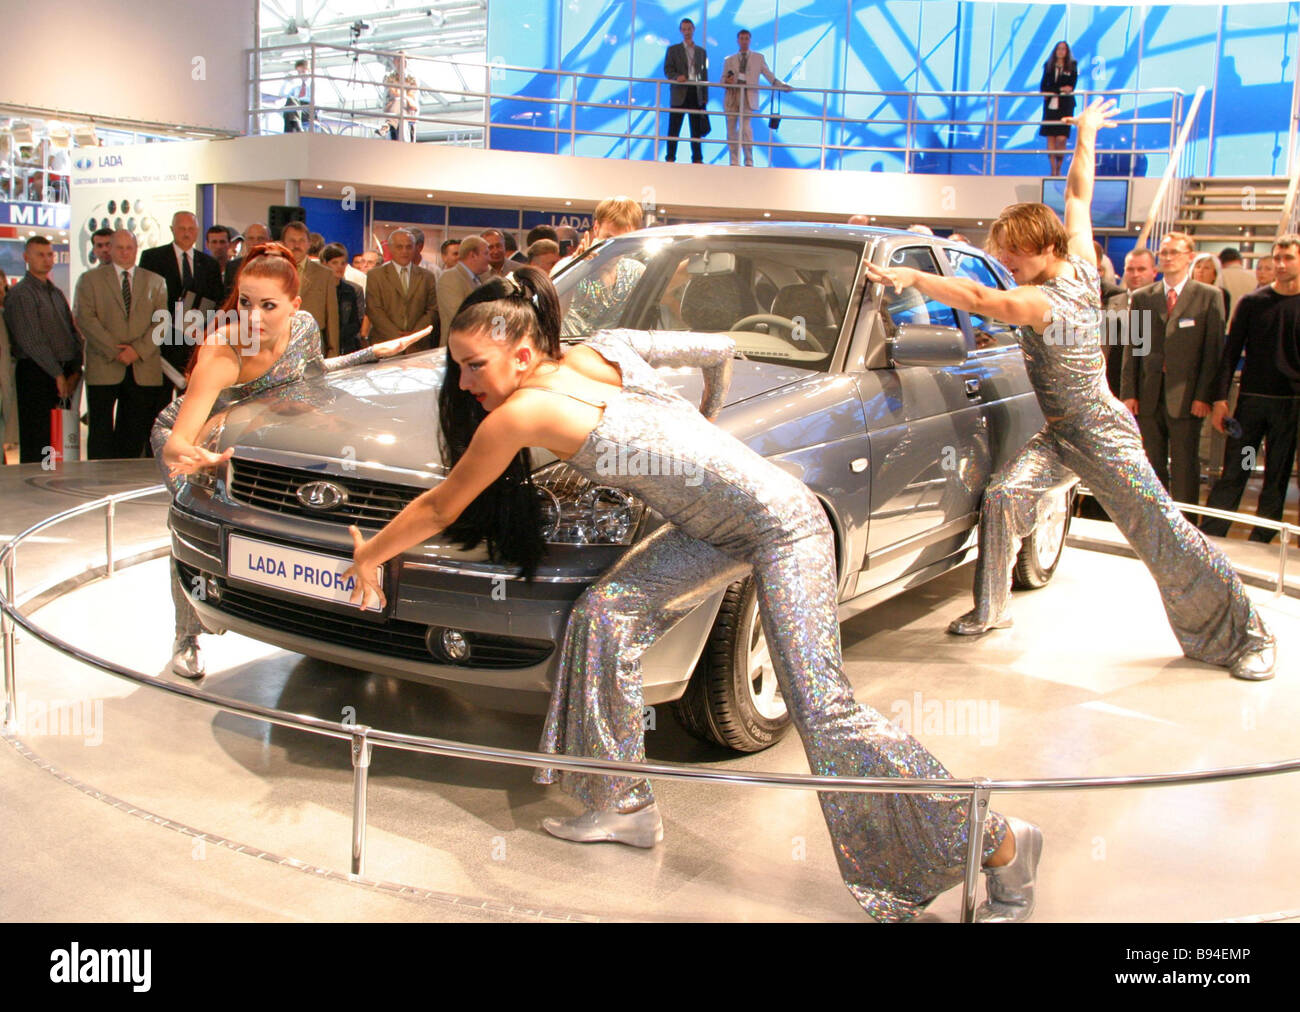 A Lada Priora car at the Motorshow 2004 Moscow - Stock Image